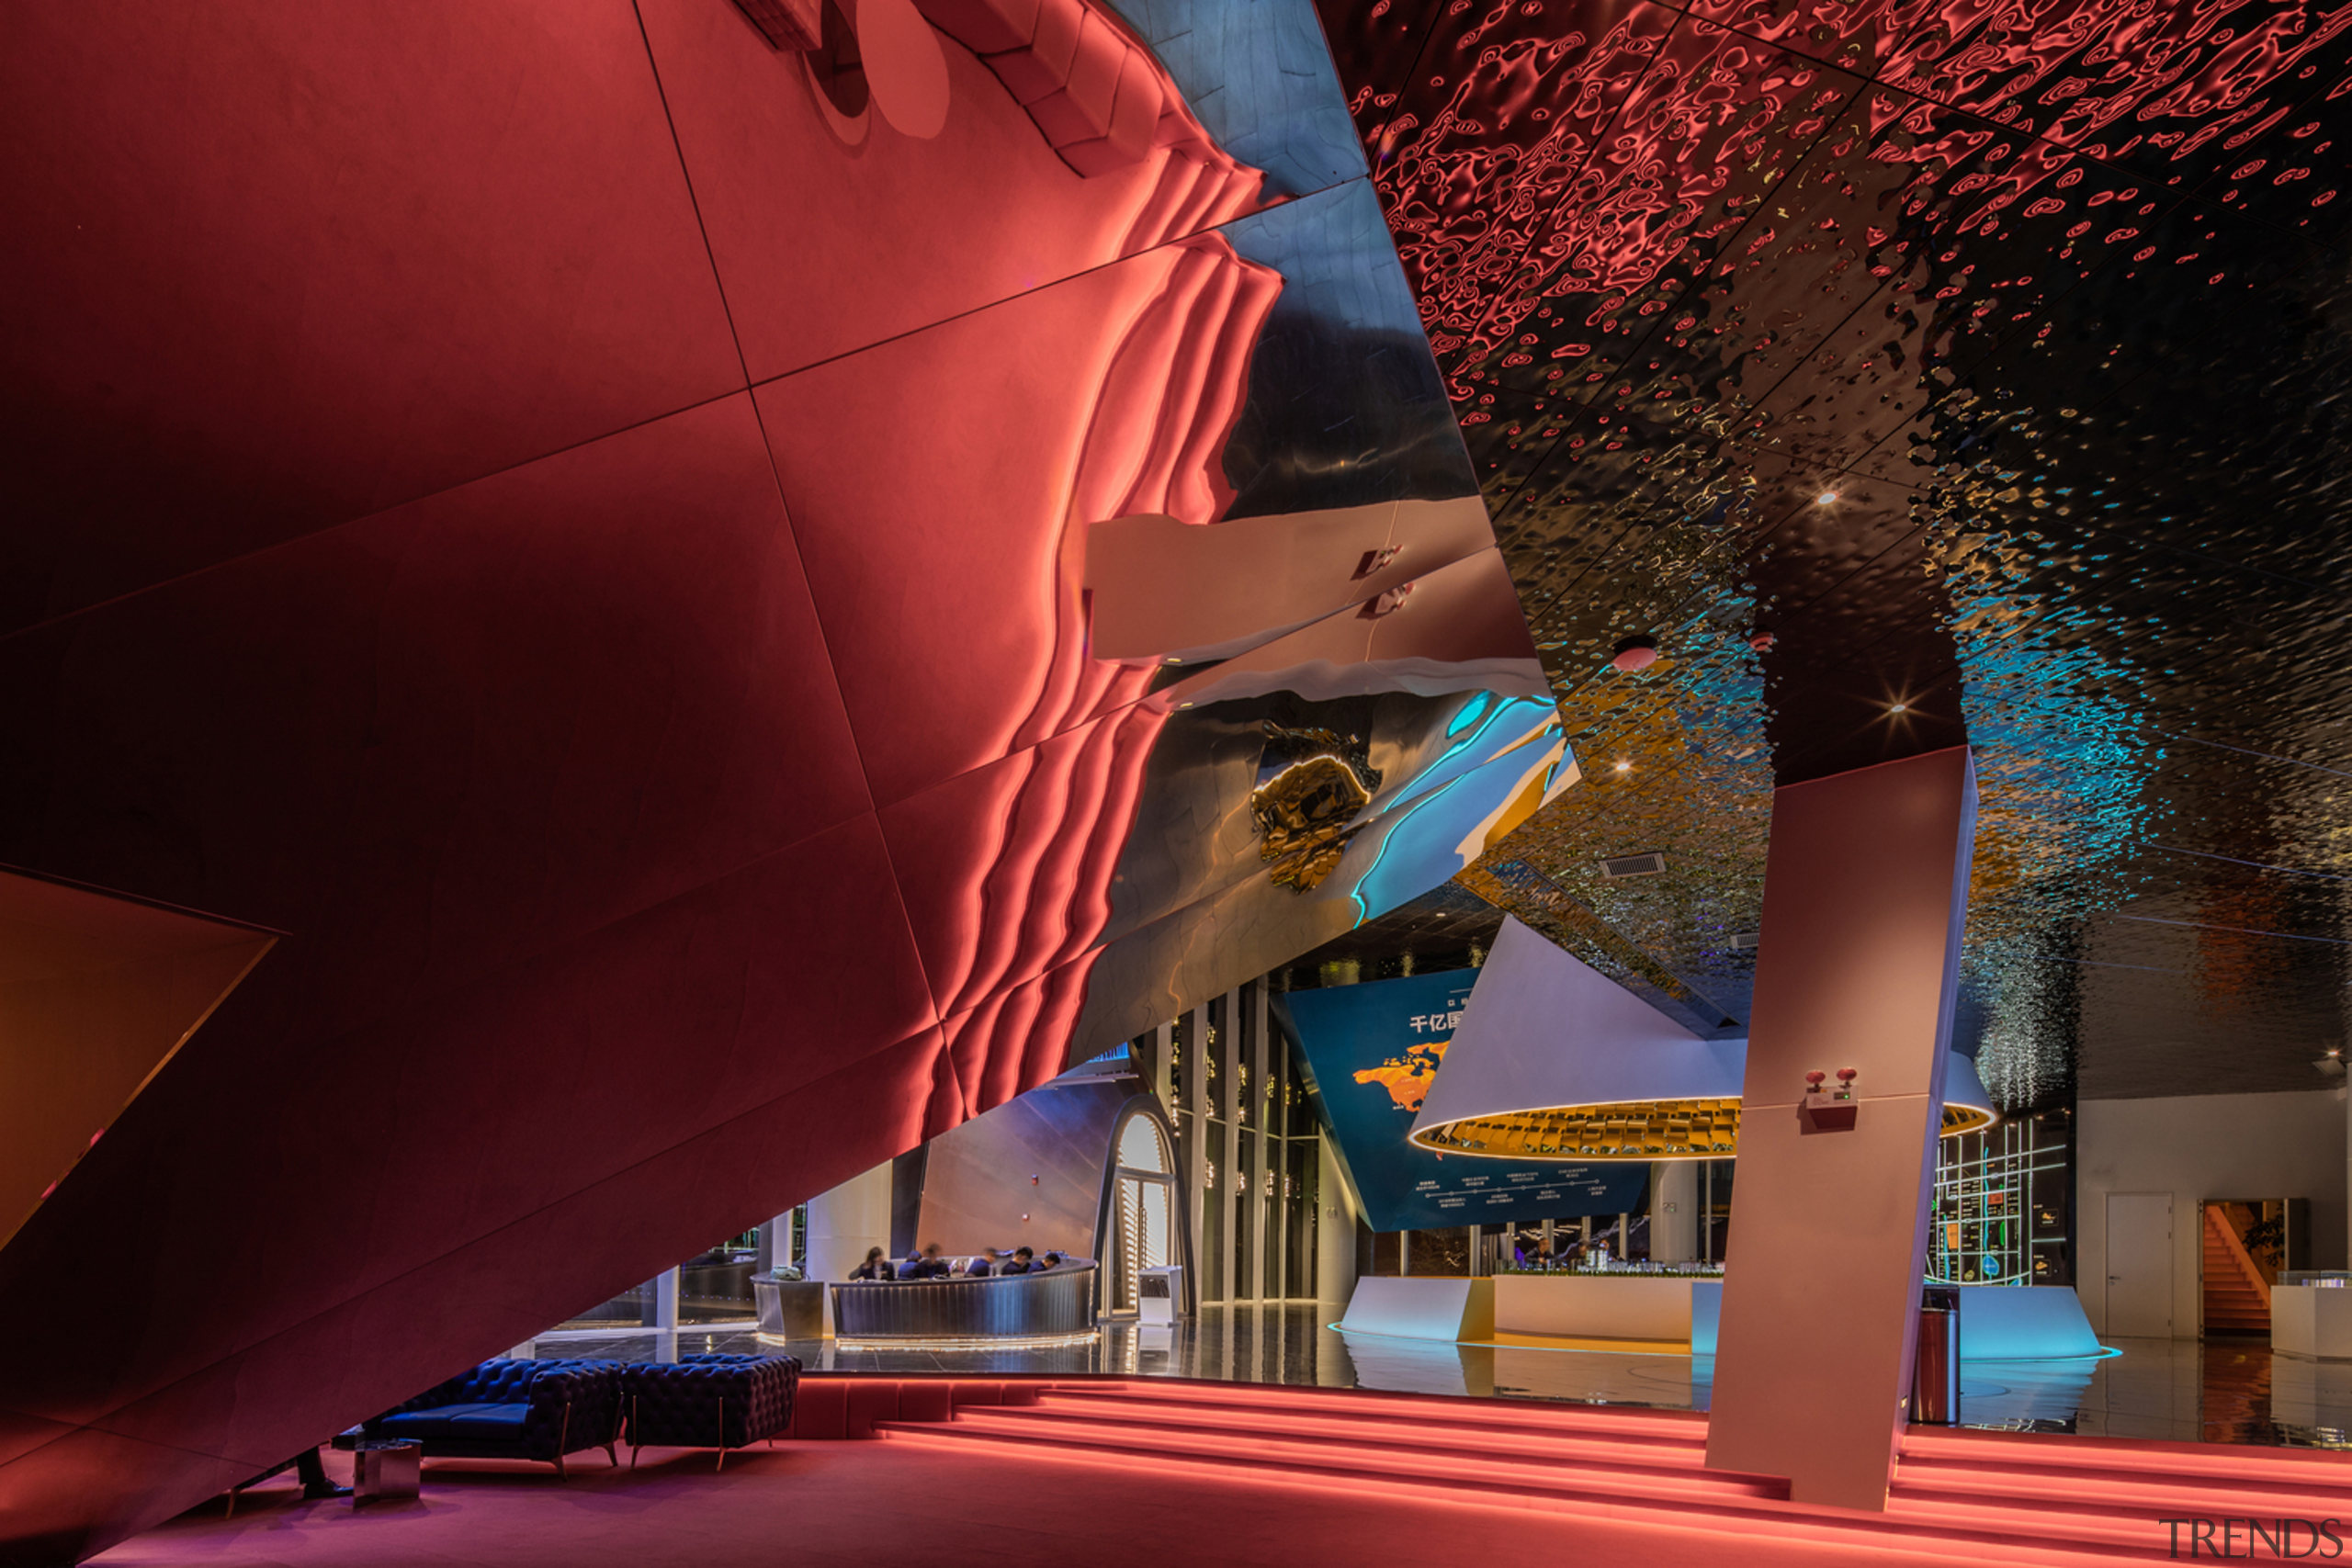 Objects floating in the air form a rich architecture, blue, building, ceiling, city, landmark, night, pink, red, sky, red